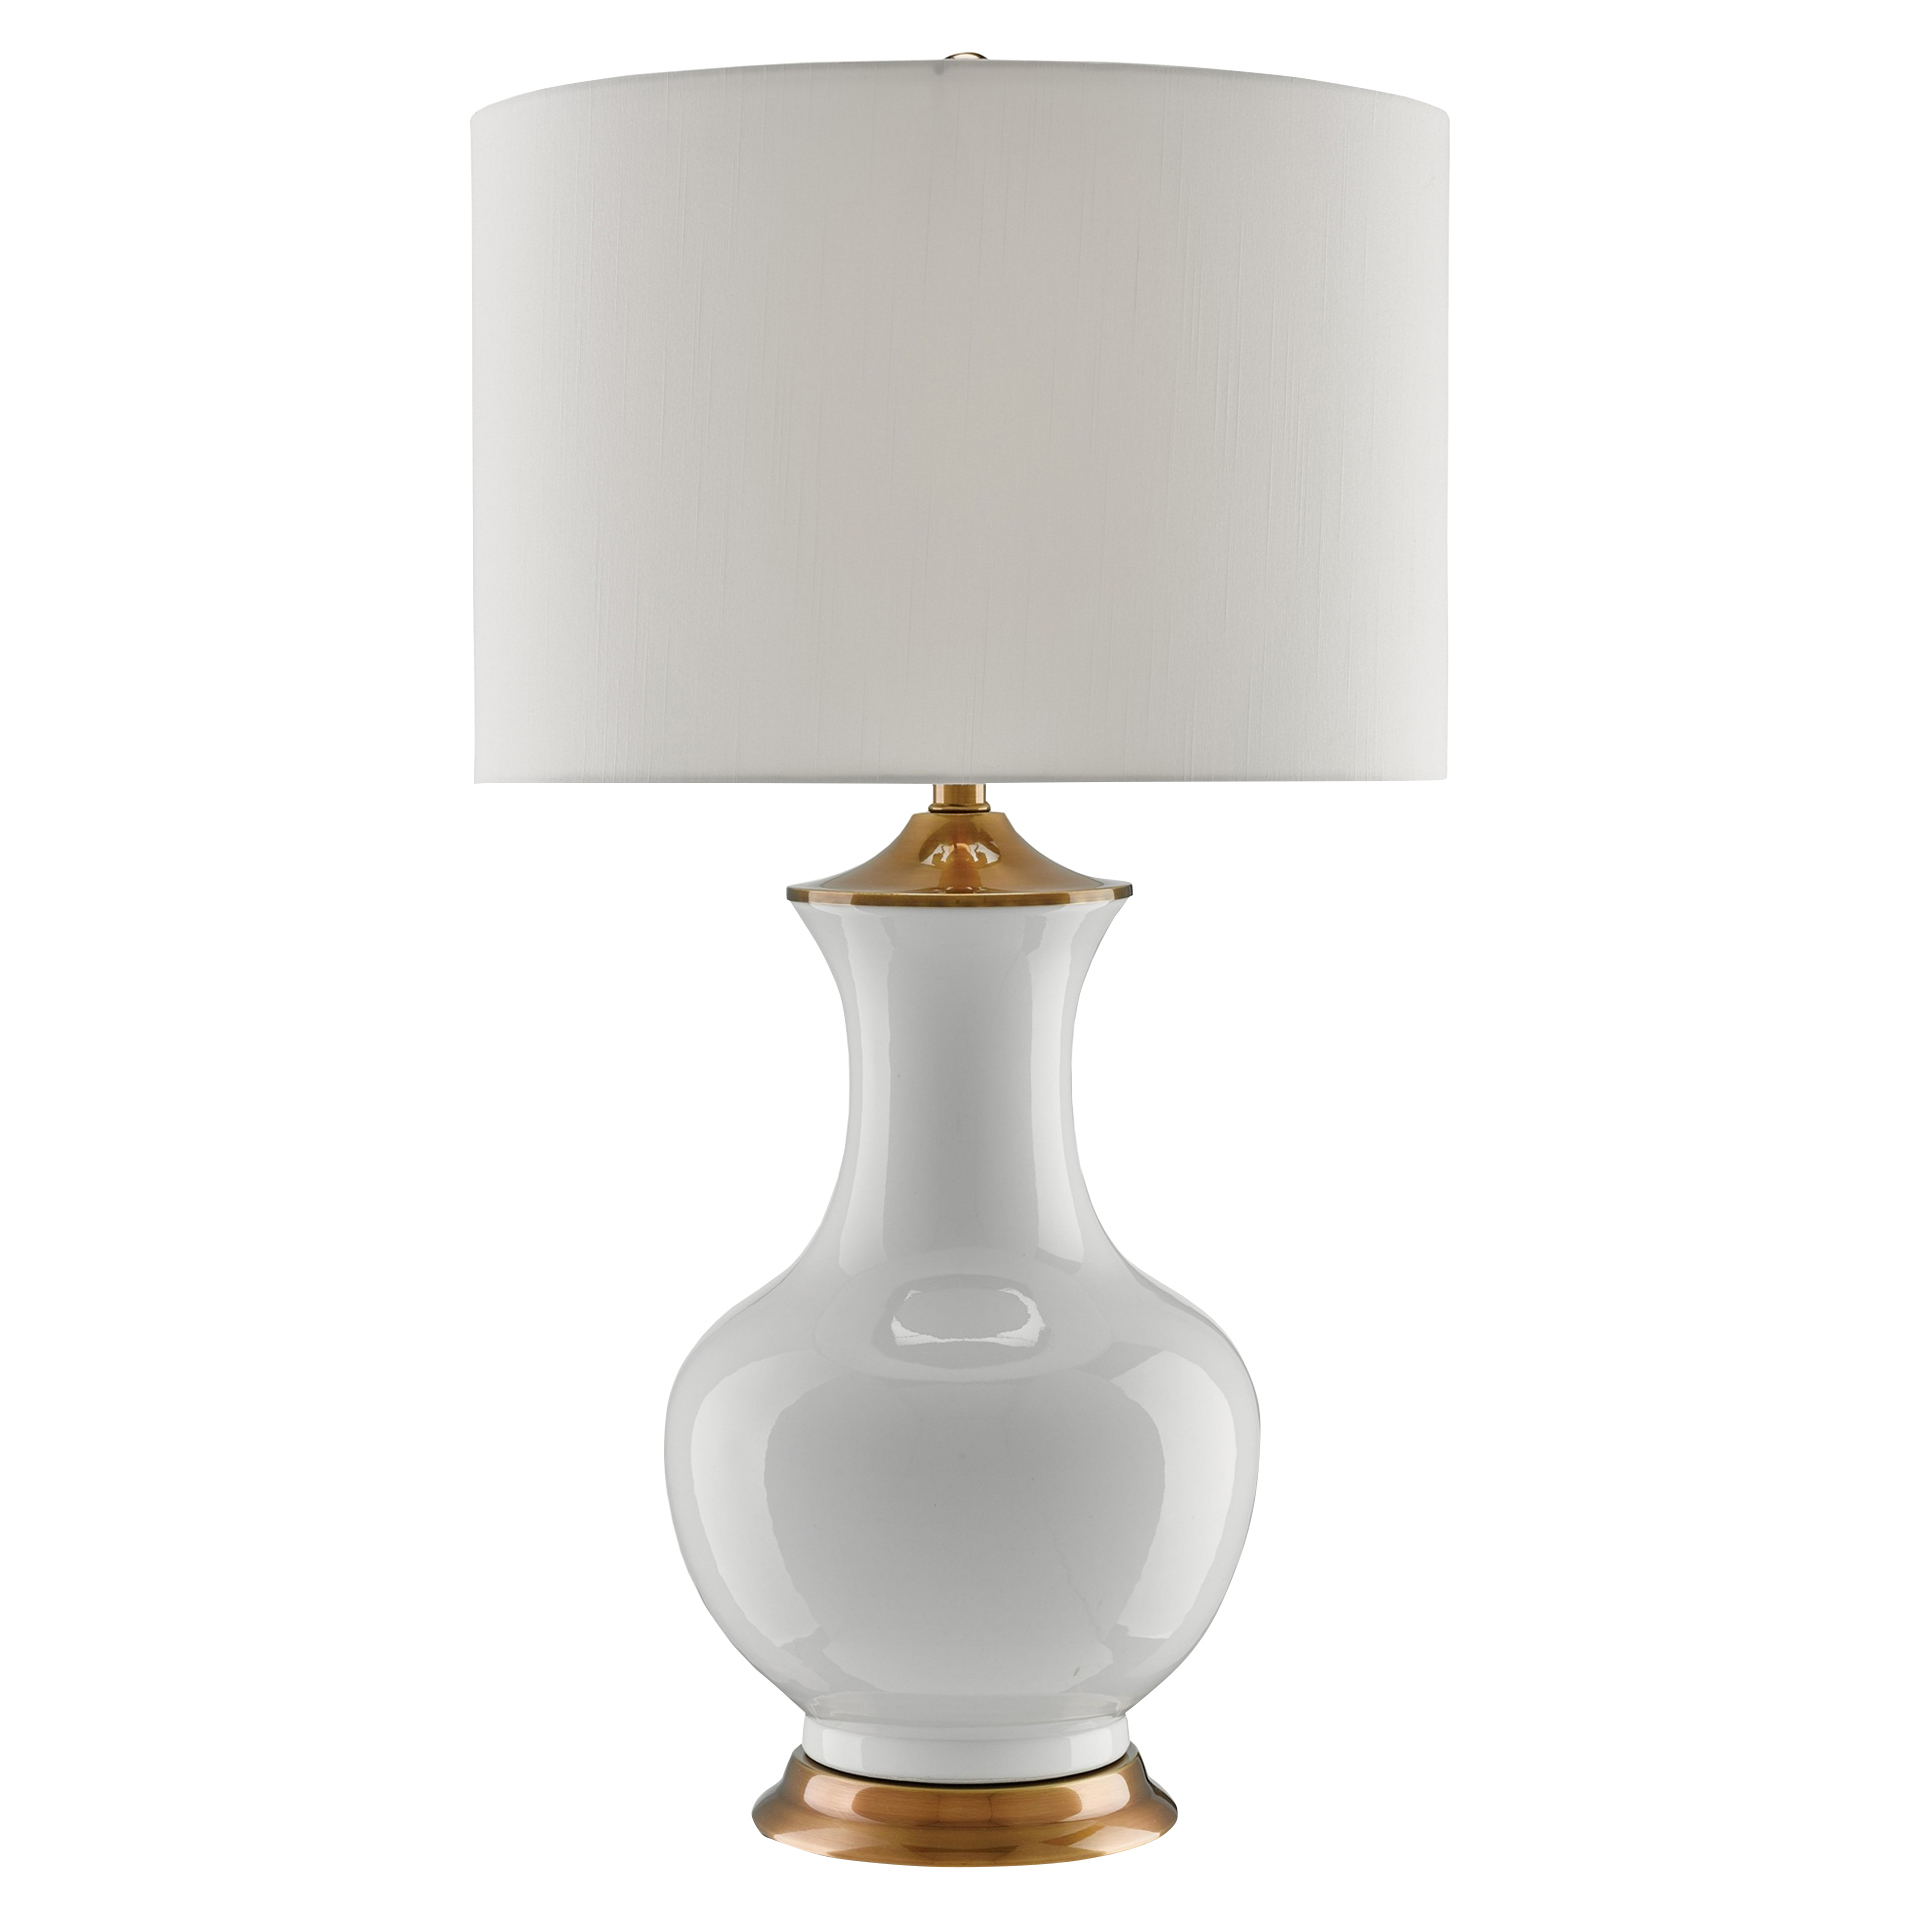 Disa Global Bazaar White Ceramic Genie Table Lamp